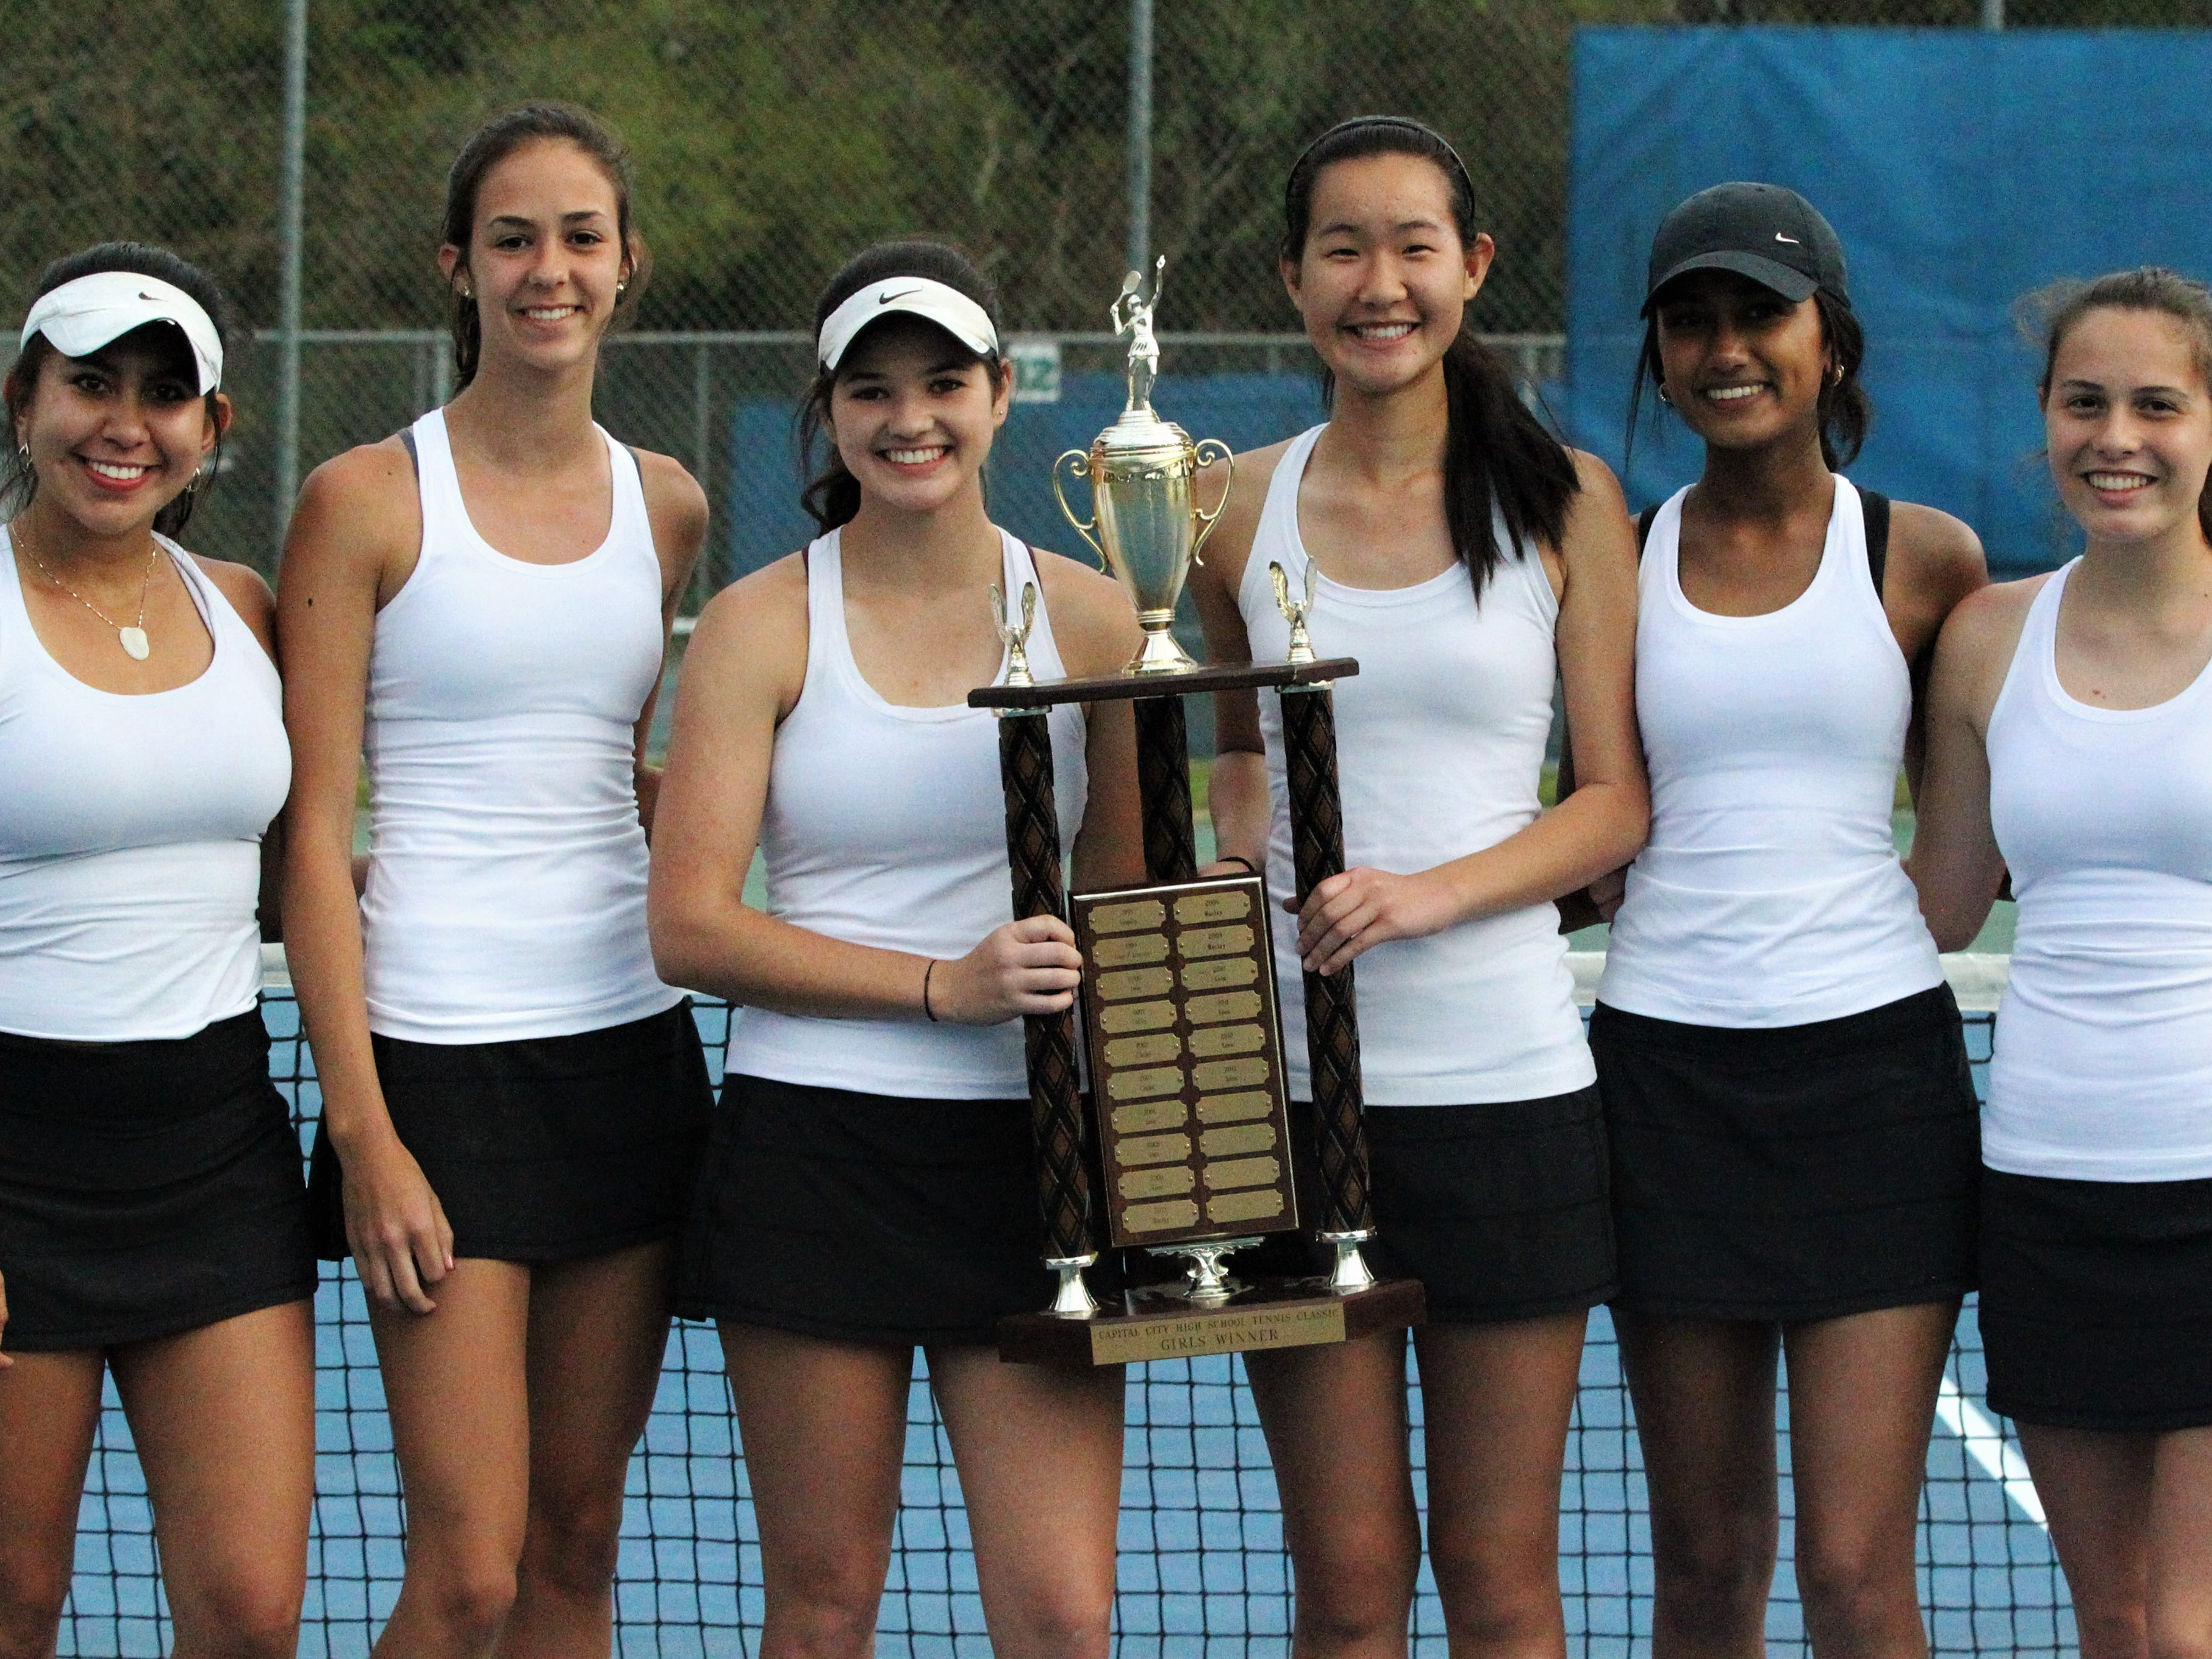 Chiles' girls tennis team won its fifth straight district championship during the high school boys and girls city tennis tournament at Tom Brown Park on Thursday, March 14, 2019. Senior Gracie Wilson (third from left) won a city title at No. 1.